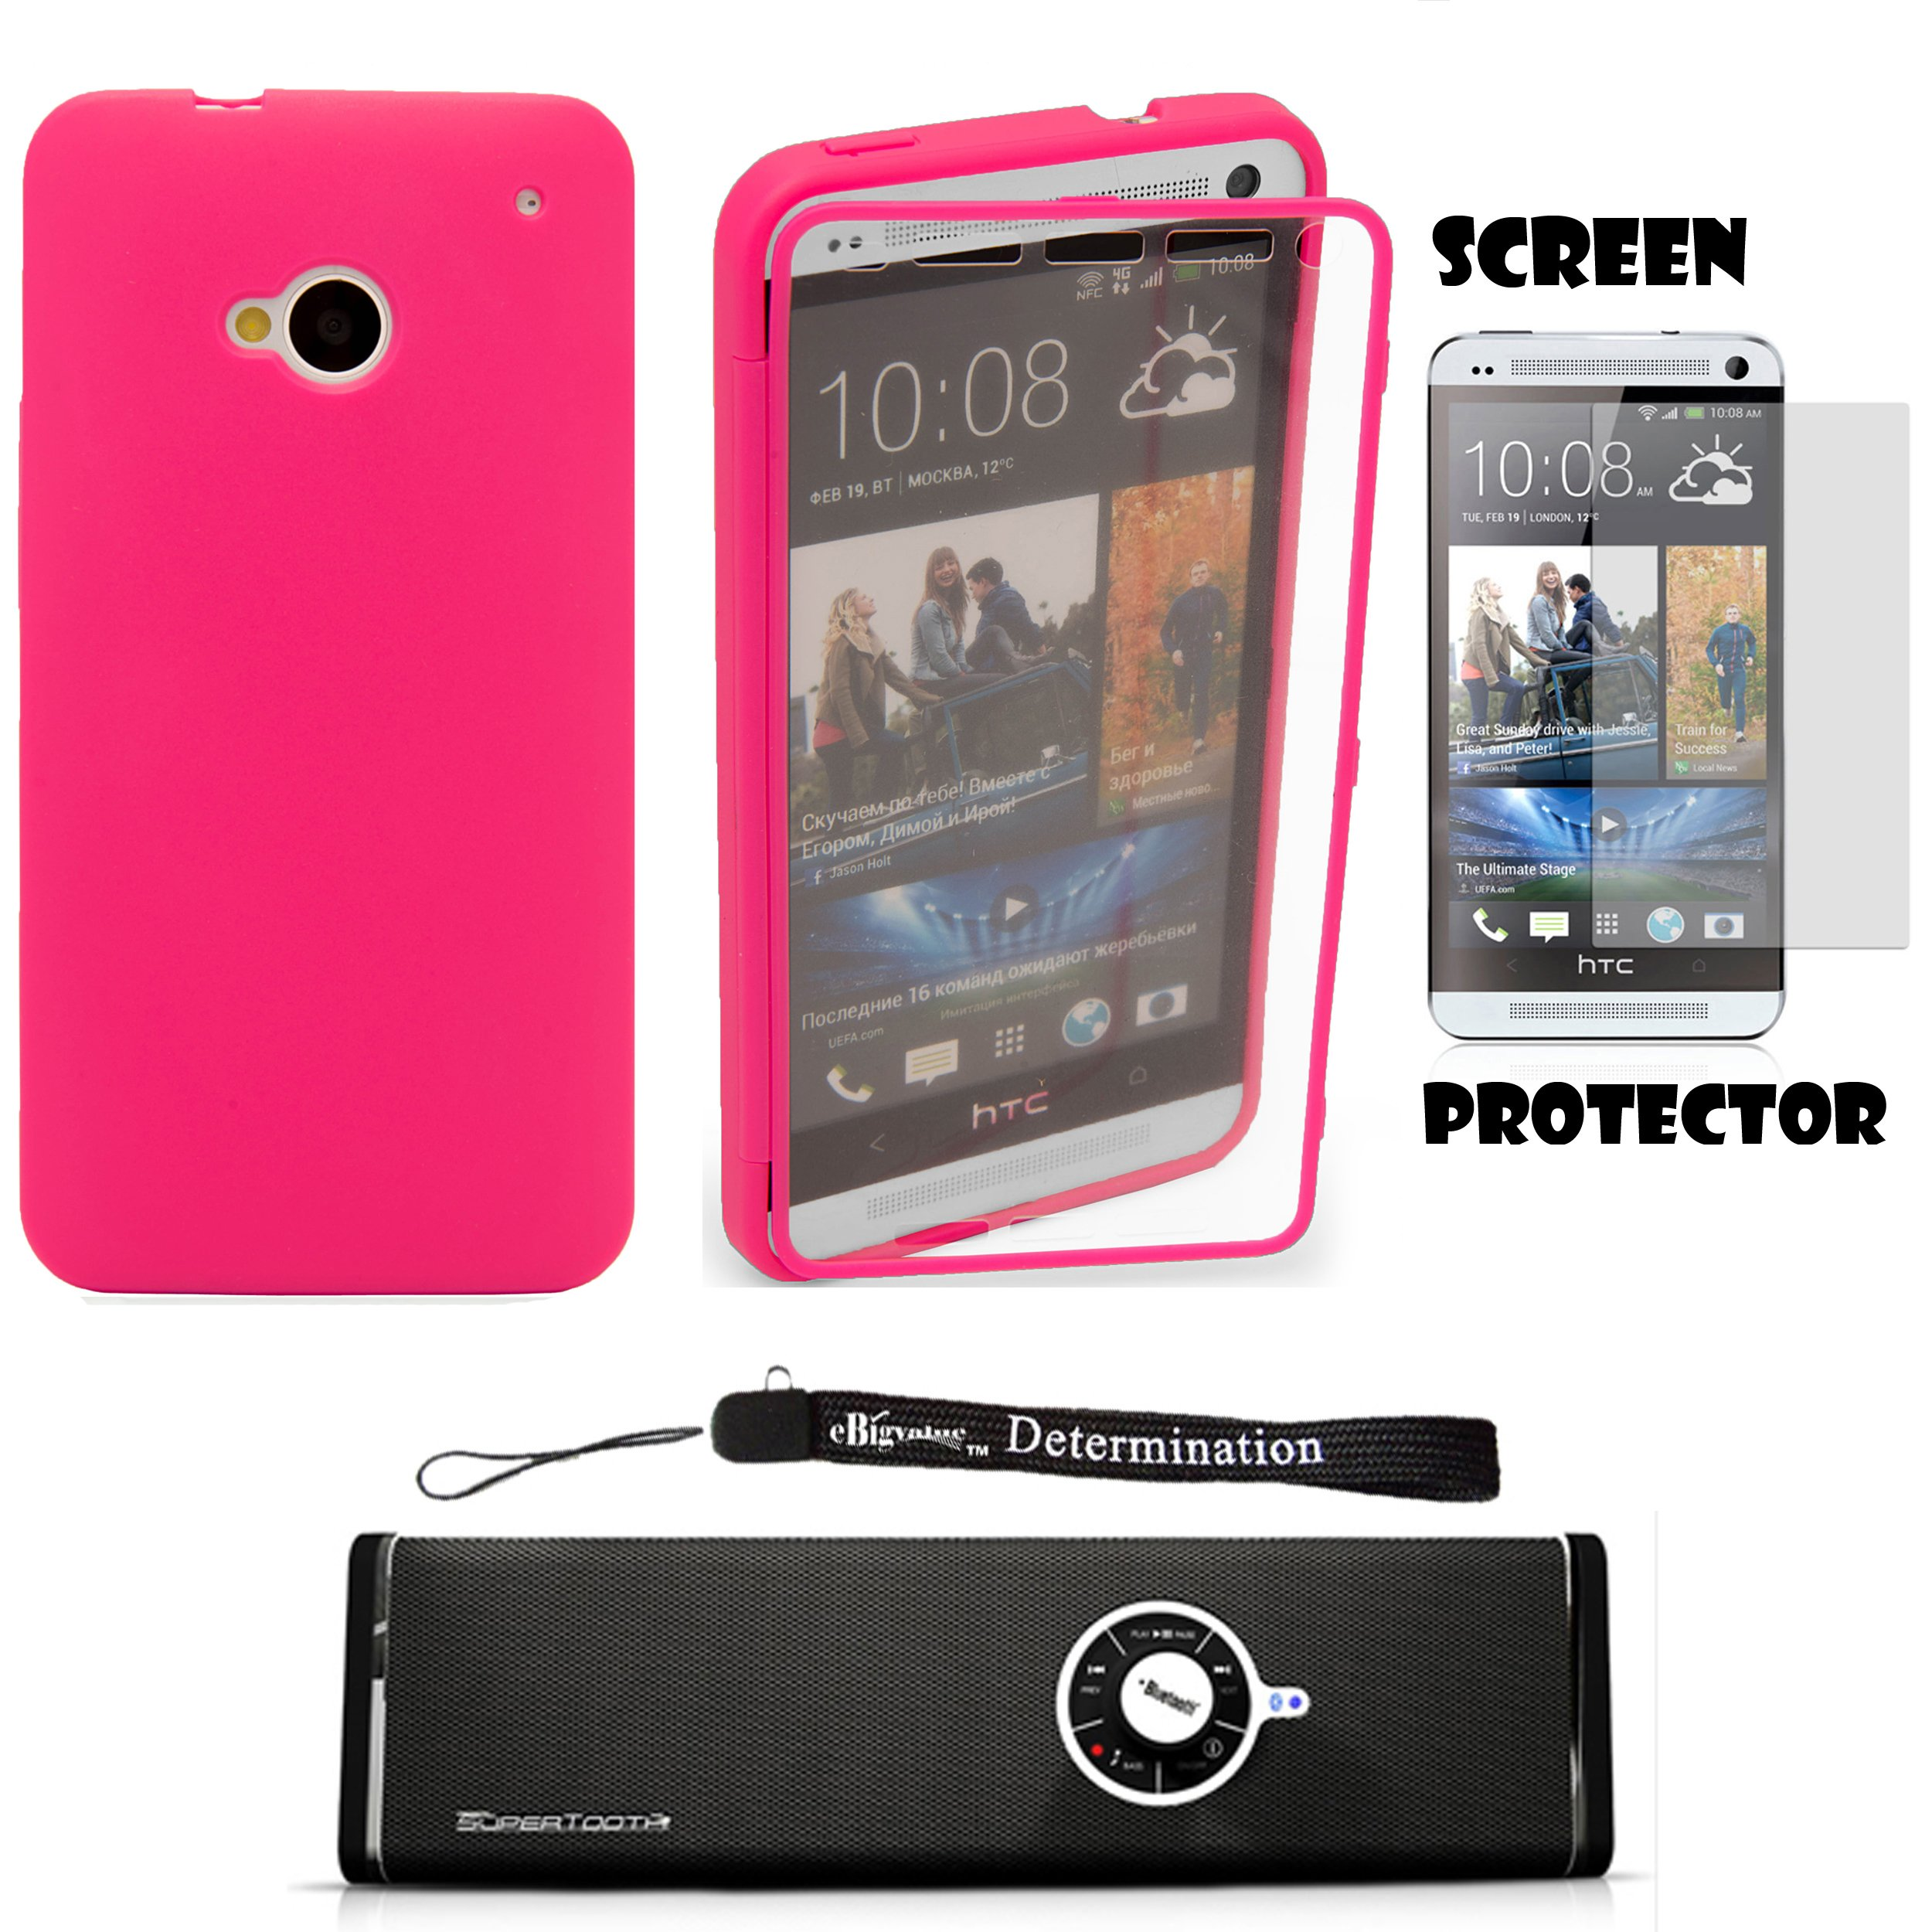 TPU Cover Skin with Attached Screen Guard For HTC ONE M7 4.7-inch Super LCD 3 (NEWEST 2013 VERSION) + Screen Protector + Bluetooth Speaker by eBigValue